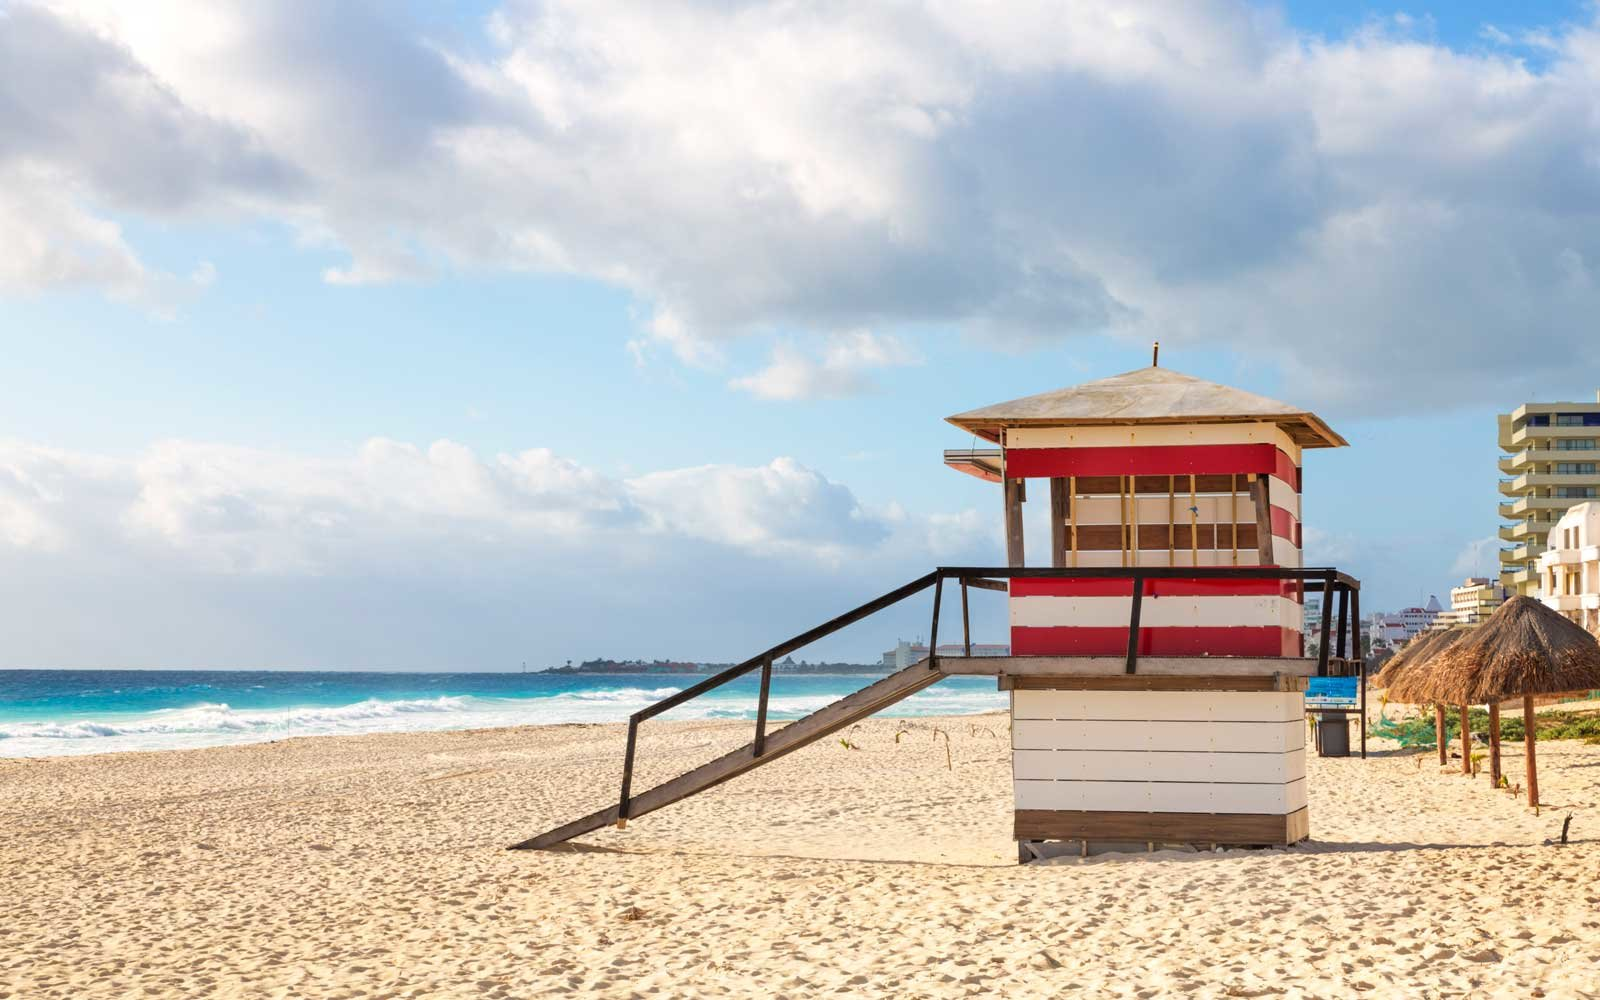 Mexico, Quintana Roo, Cancun, Playa Delfines, View of beach and lifeguard hut on sunny day